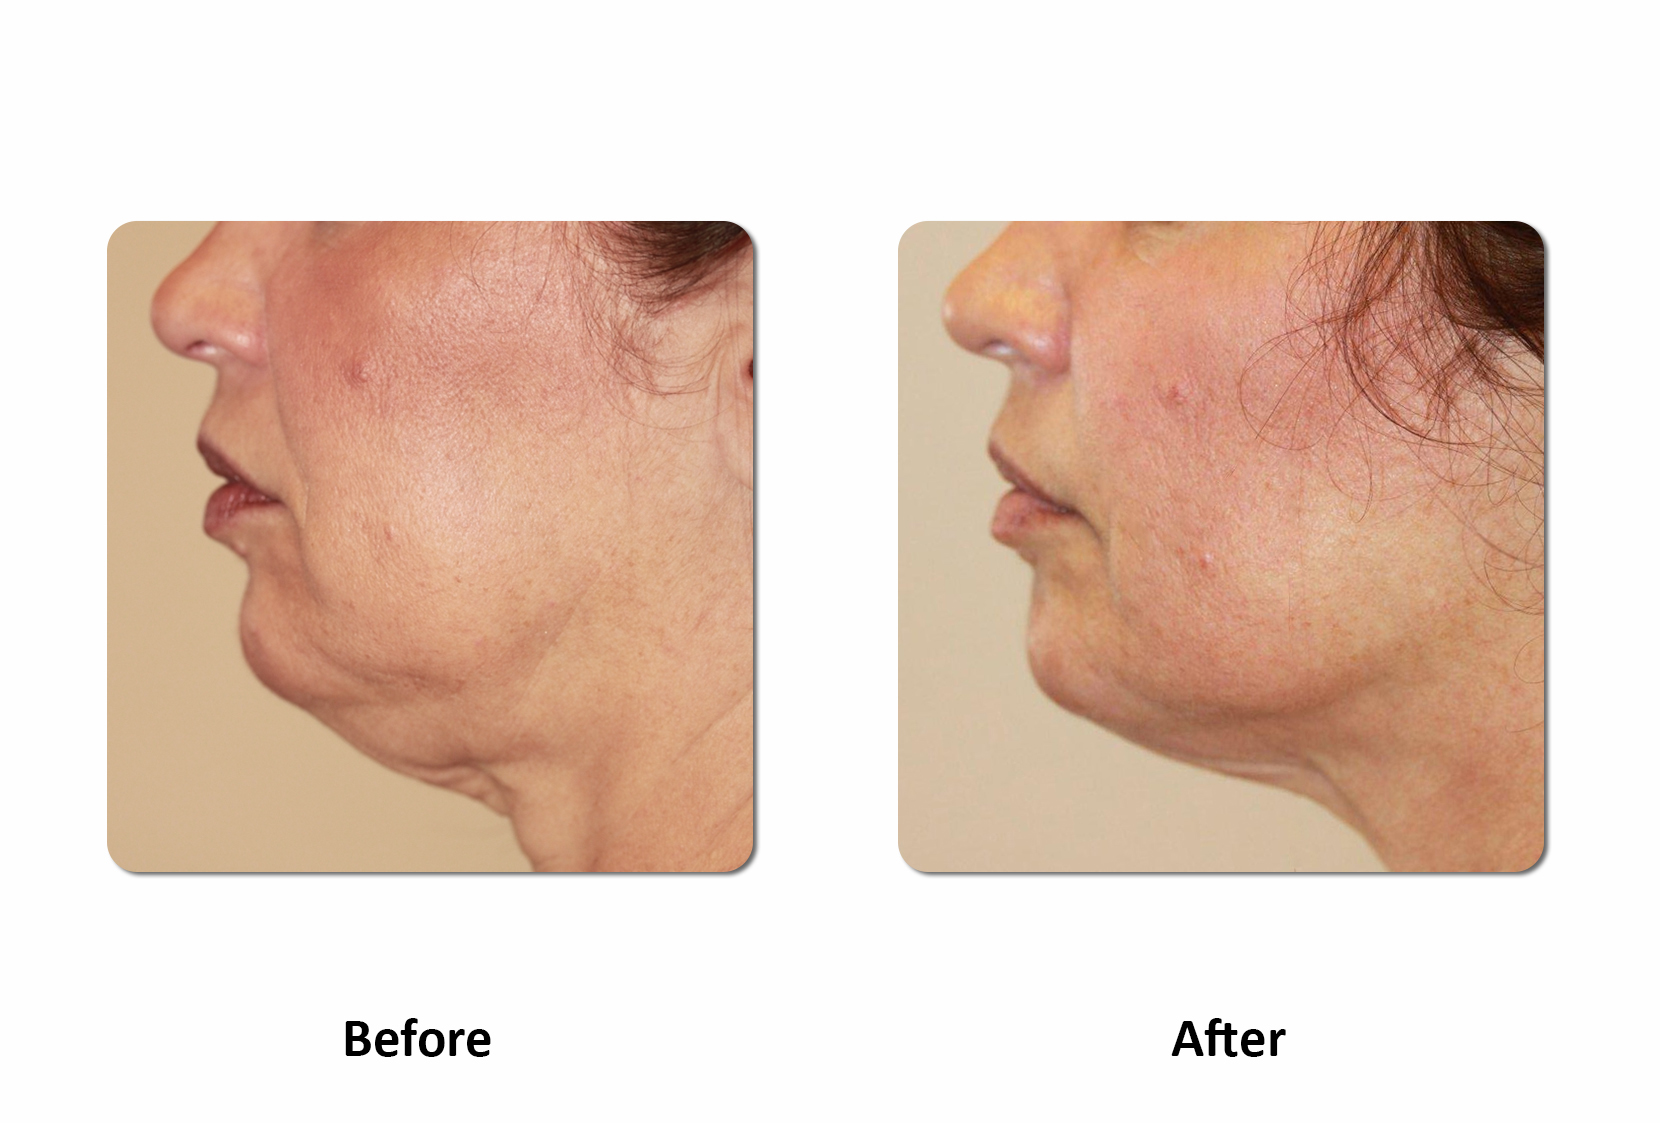 ReLift Chin 1 Before and After